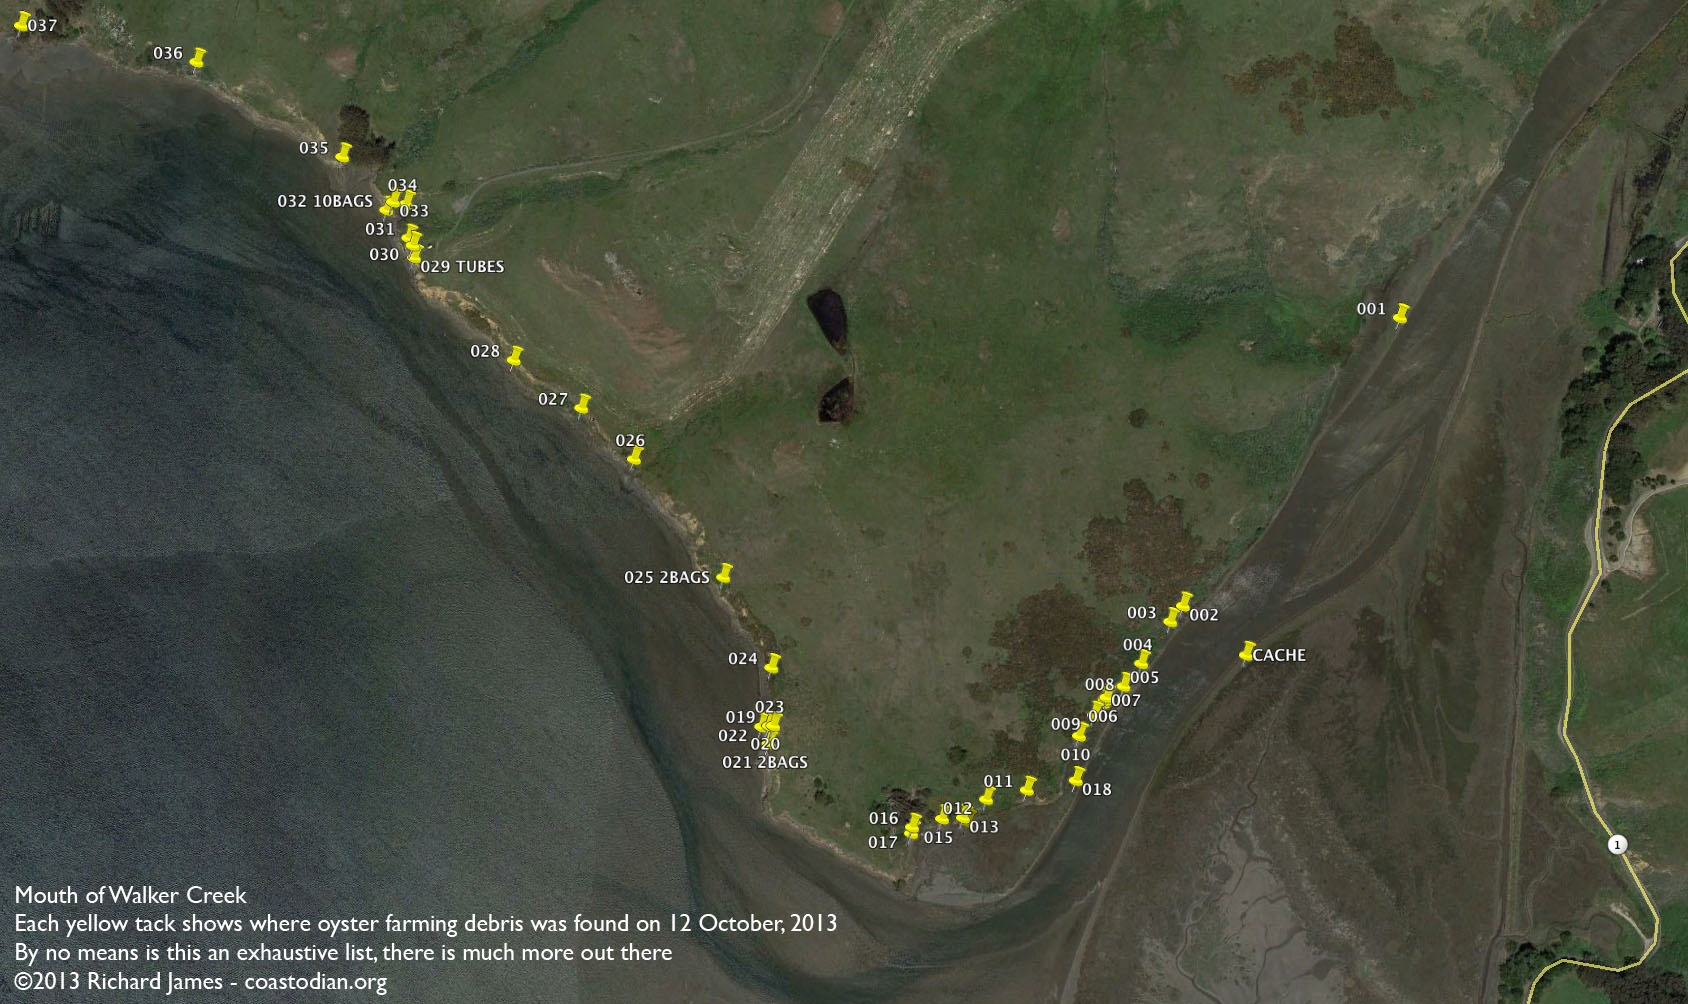 Map of Walker Creek mouth area showing oyster farming debris locations. Click for a larger image.